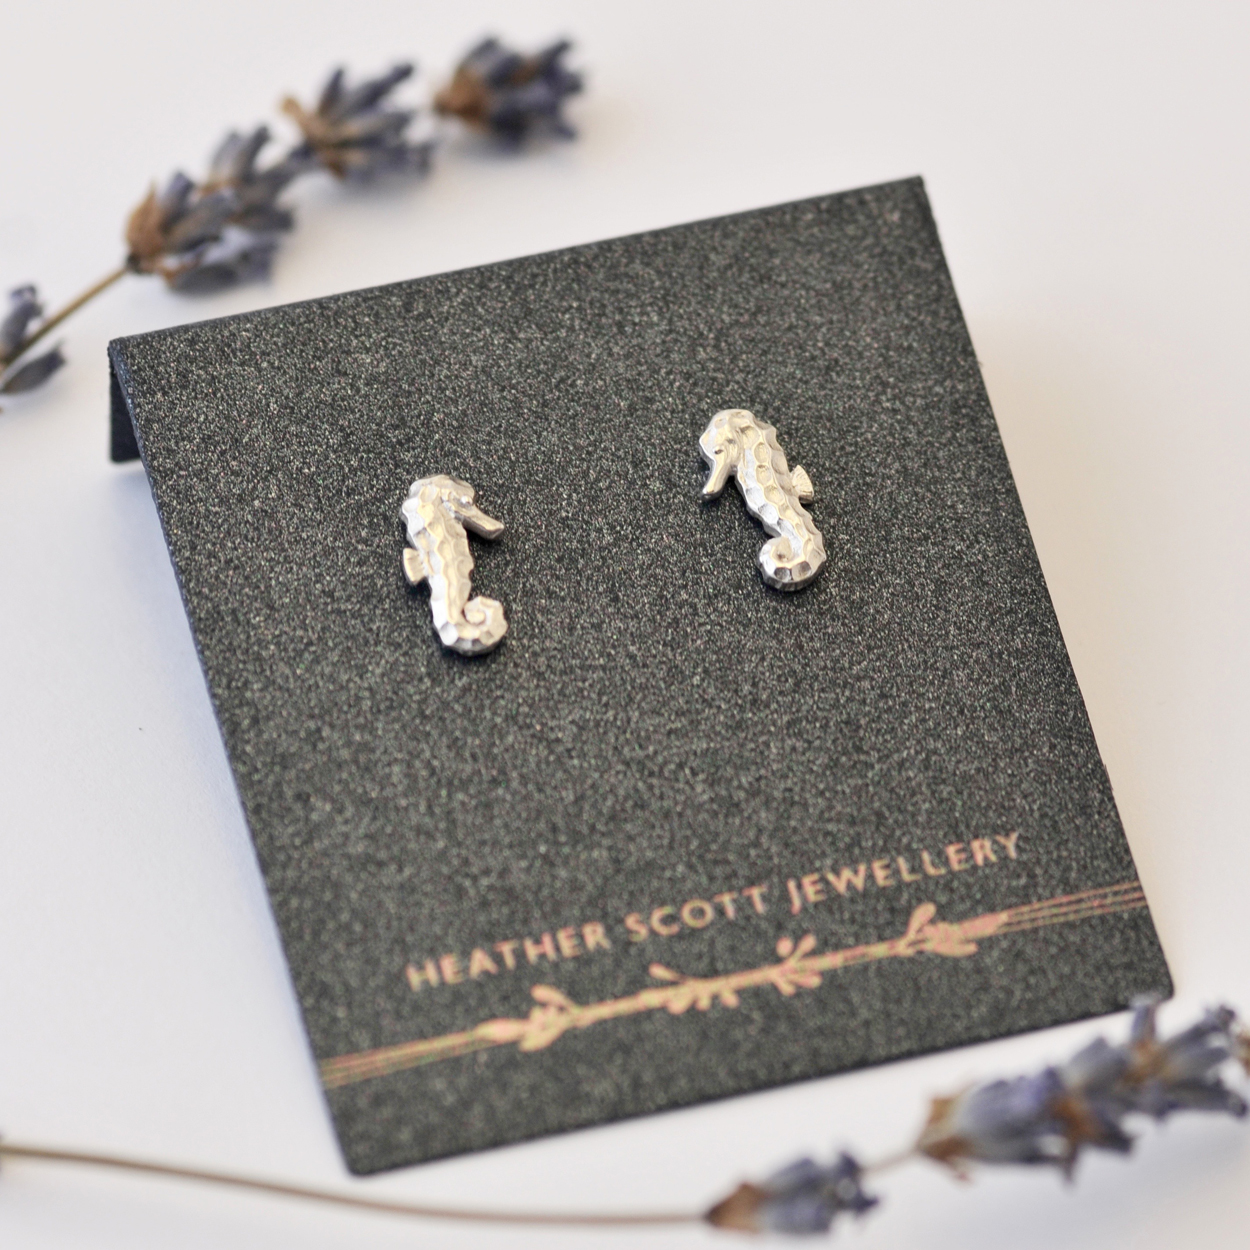 Seahorse earrings